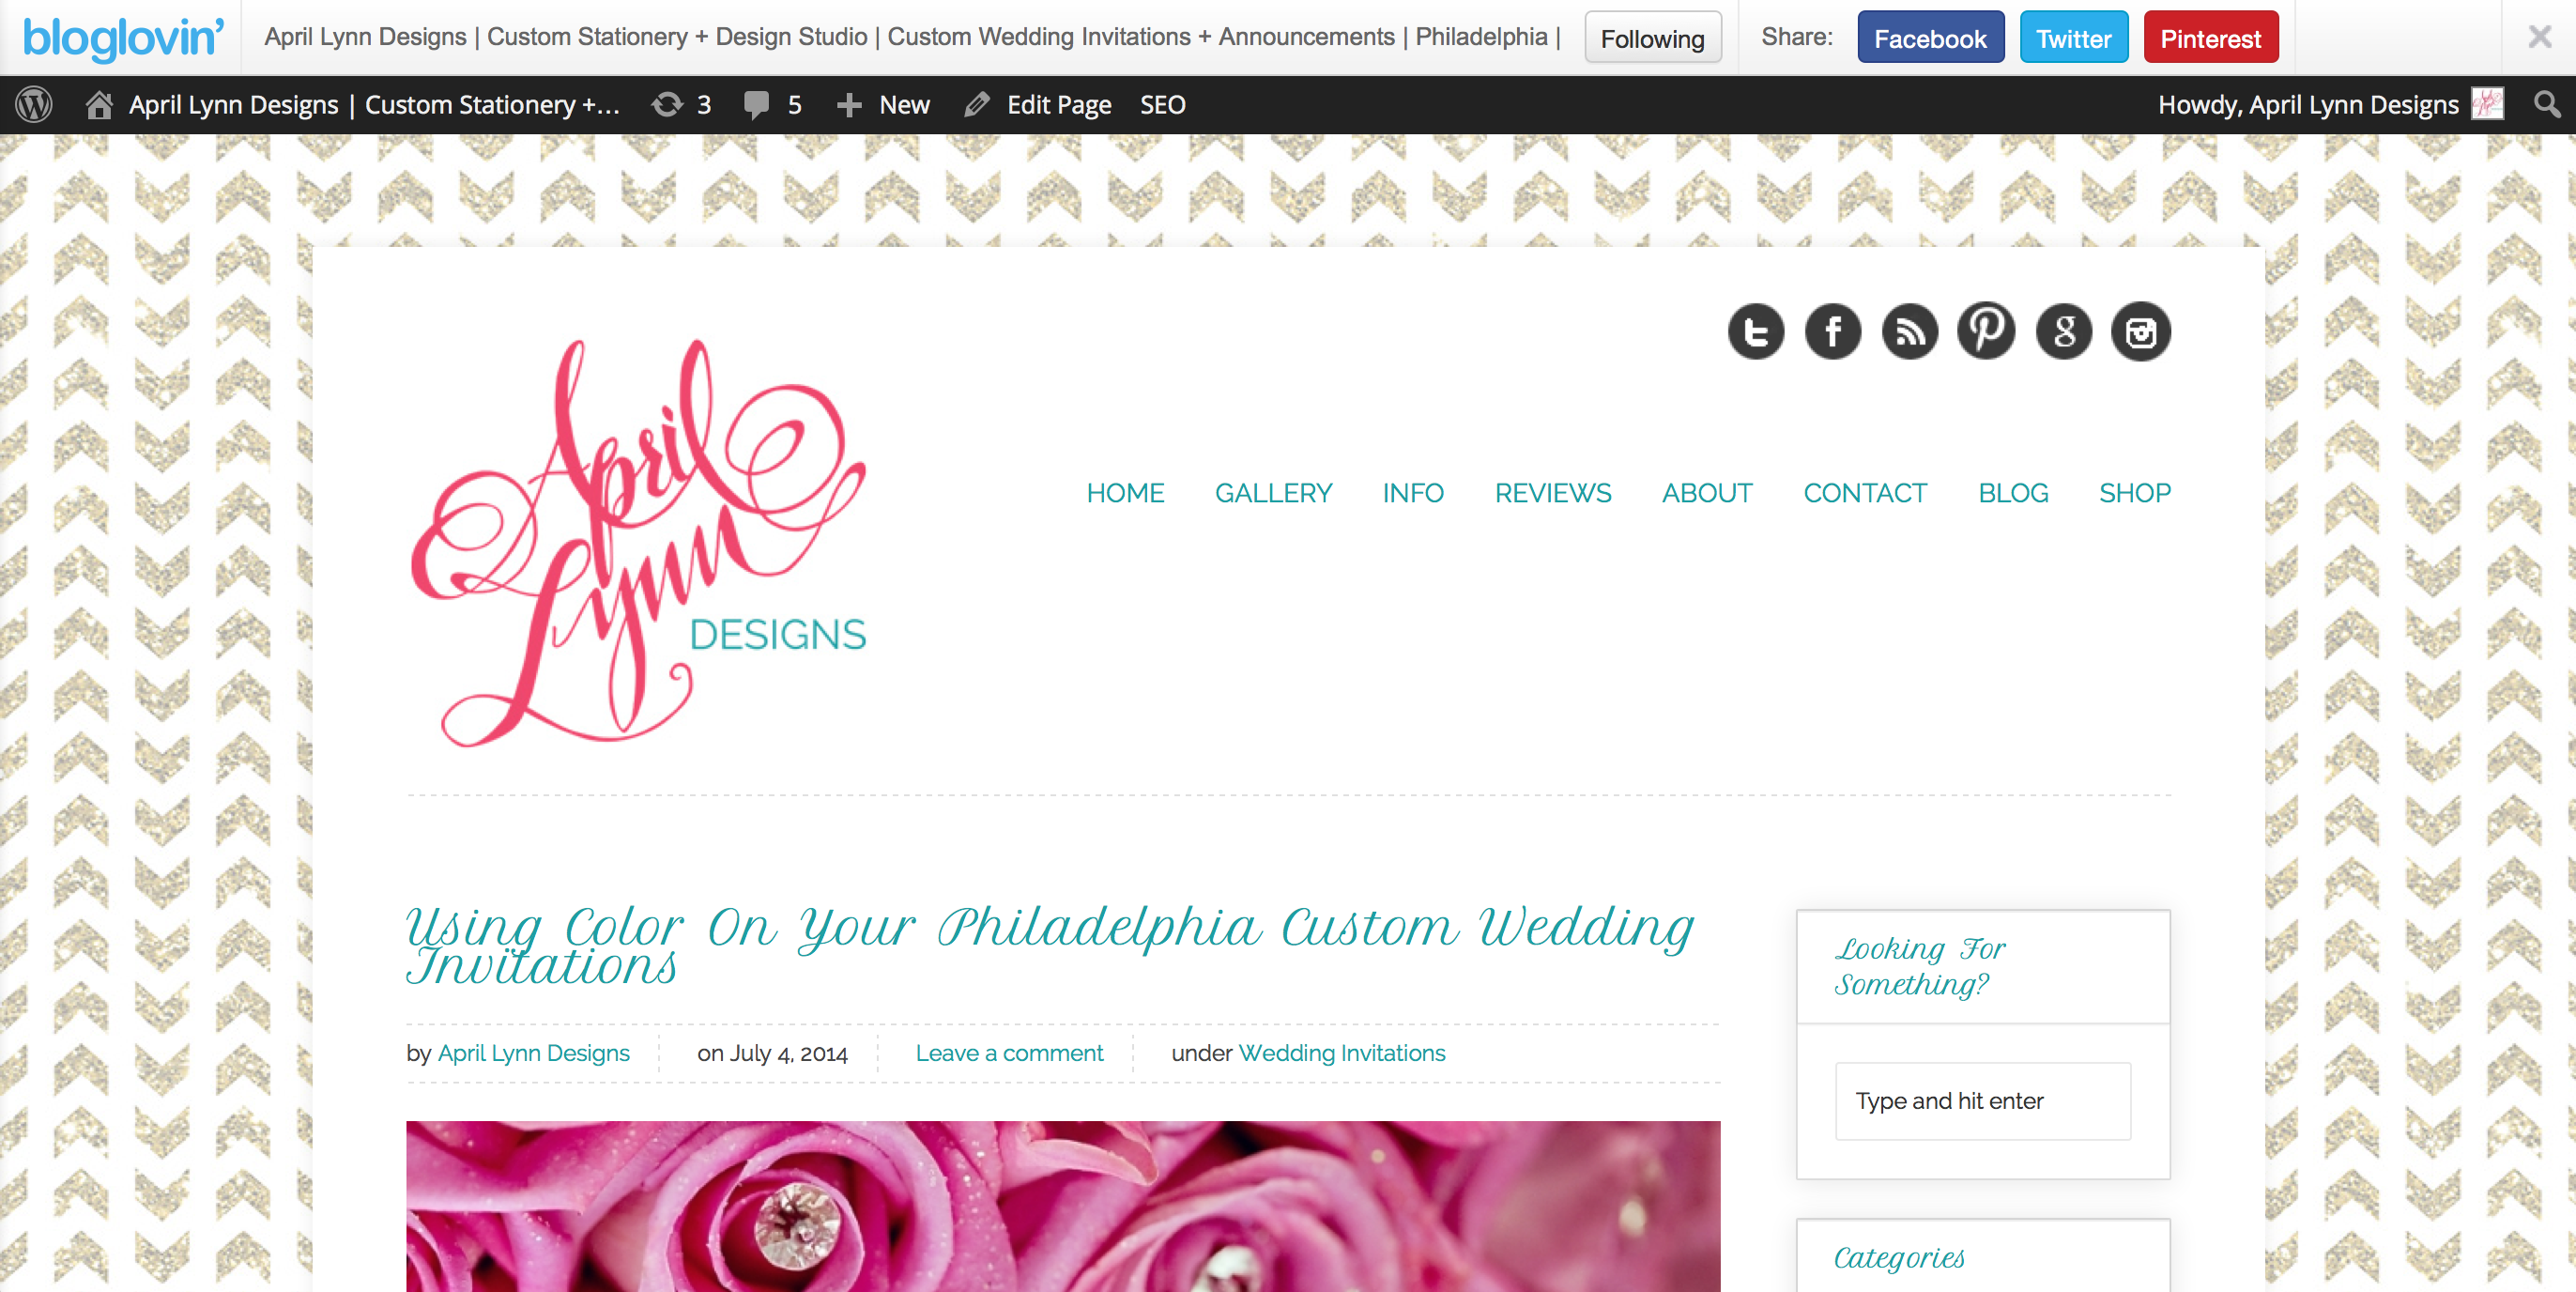 April Lynn Designs' Wedding Blog On Bloglovin'